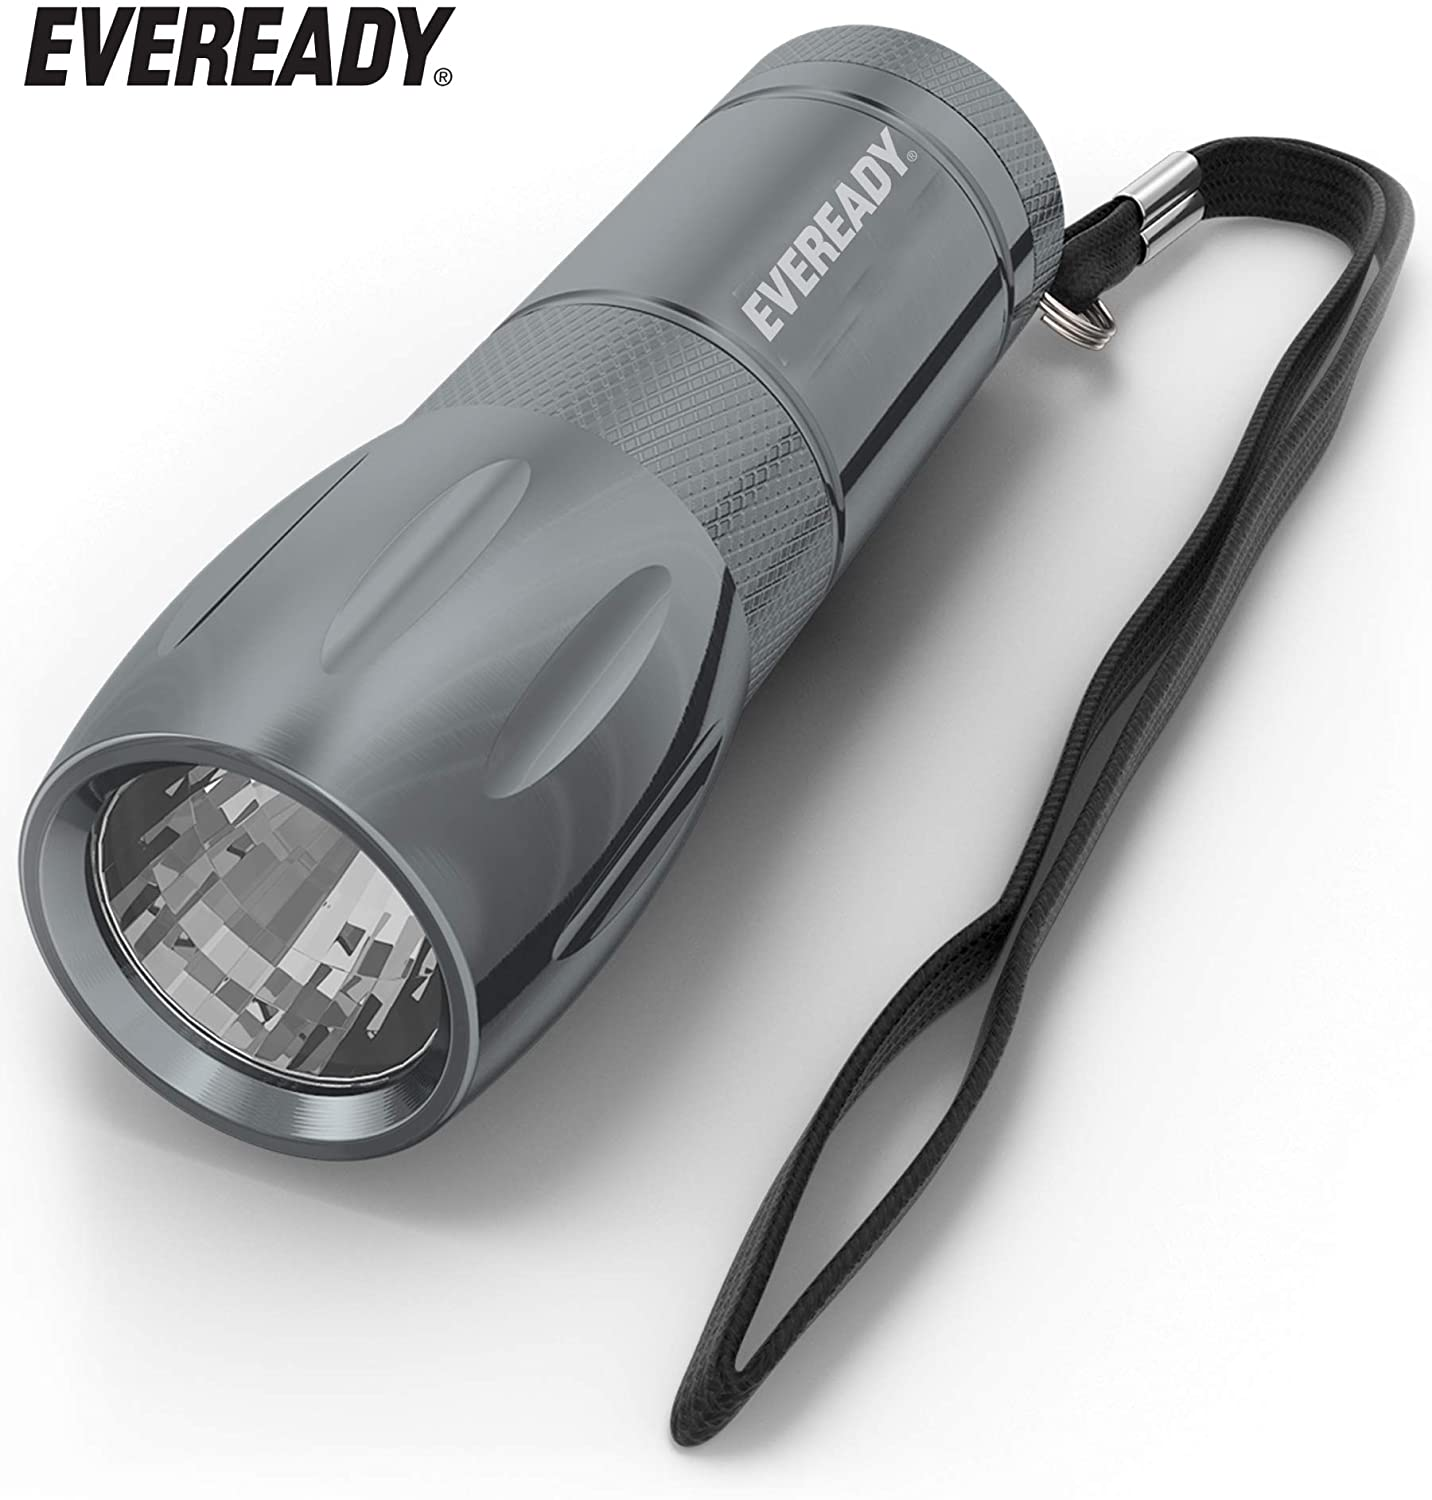 Eveready LED Flashlight, Bright White Light, Compact and Portable Everyday Carry, Durable Metal Body, Long-Lasting Battery Life, 3 AAA Batteries Included